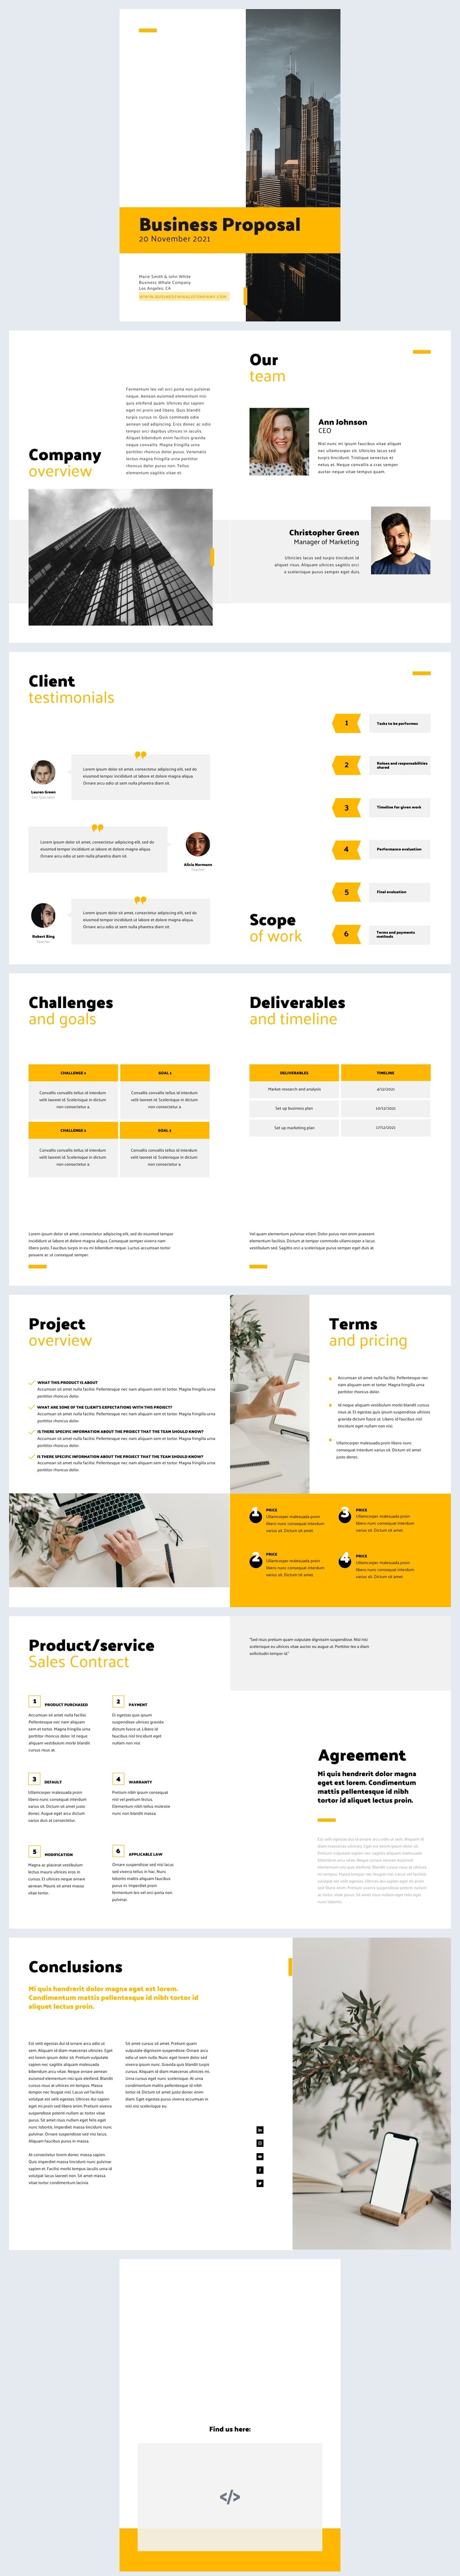 Free Business Proposal Sample Design Example